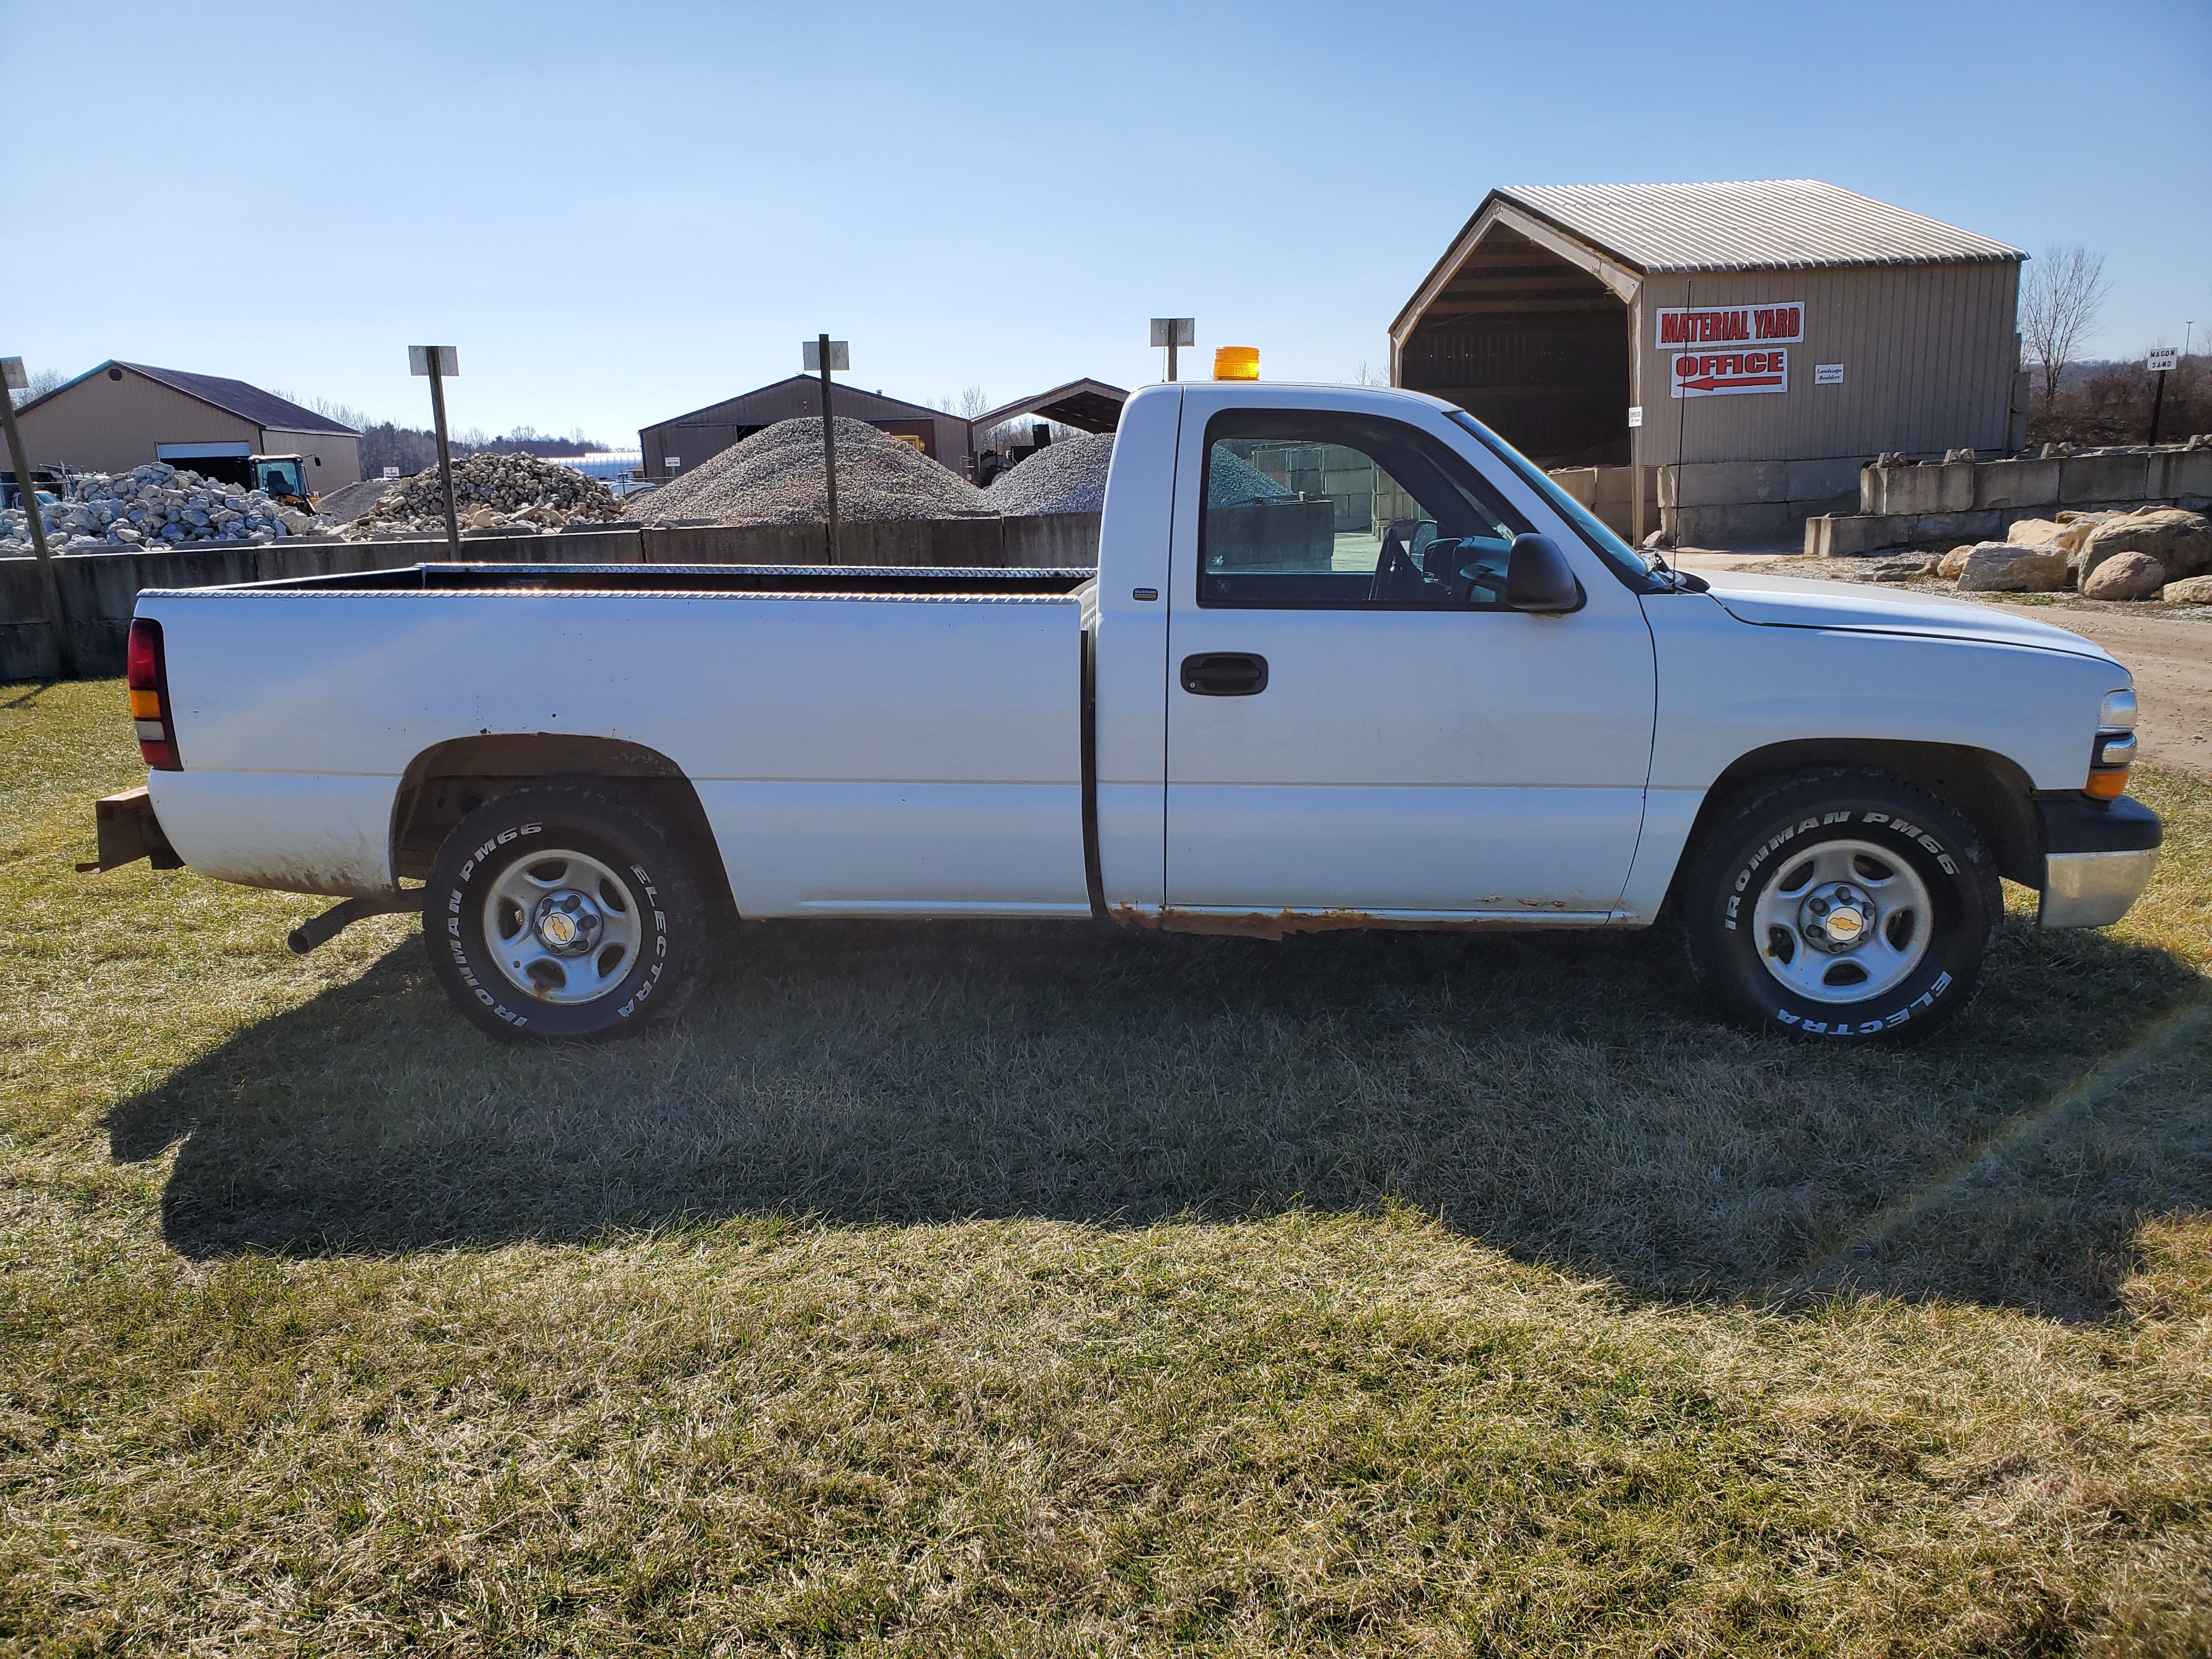 2001 Chevrolet 1500 Silverado 1500, 8 ft. Bed, 4.3 Liter Gasoline Engine, Automatic, 137,712 Miles - Image 4 of 17